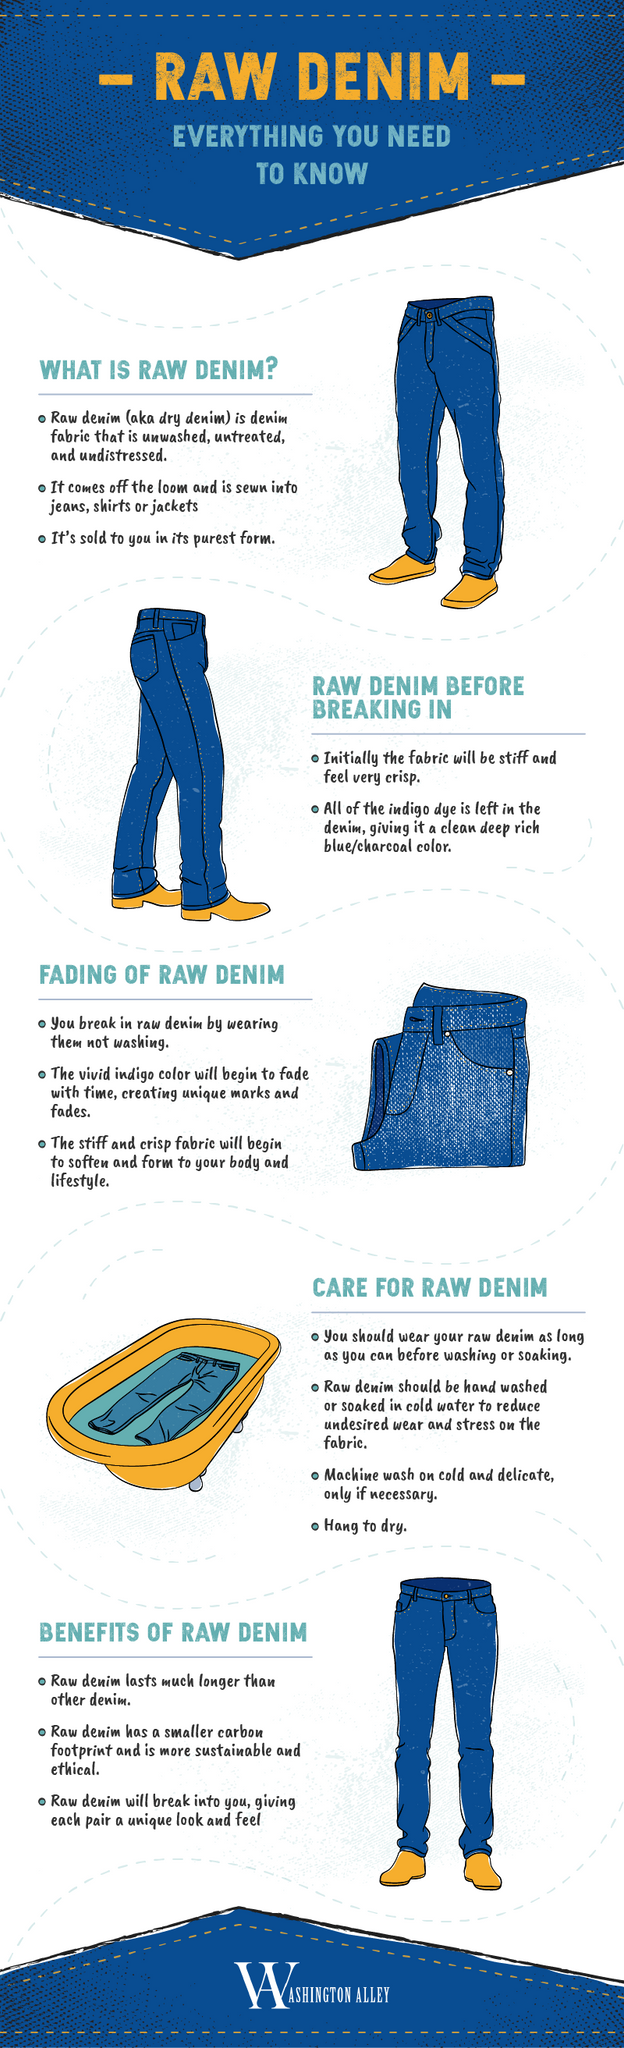 Raw Denim Infographic